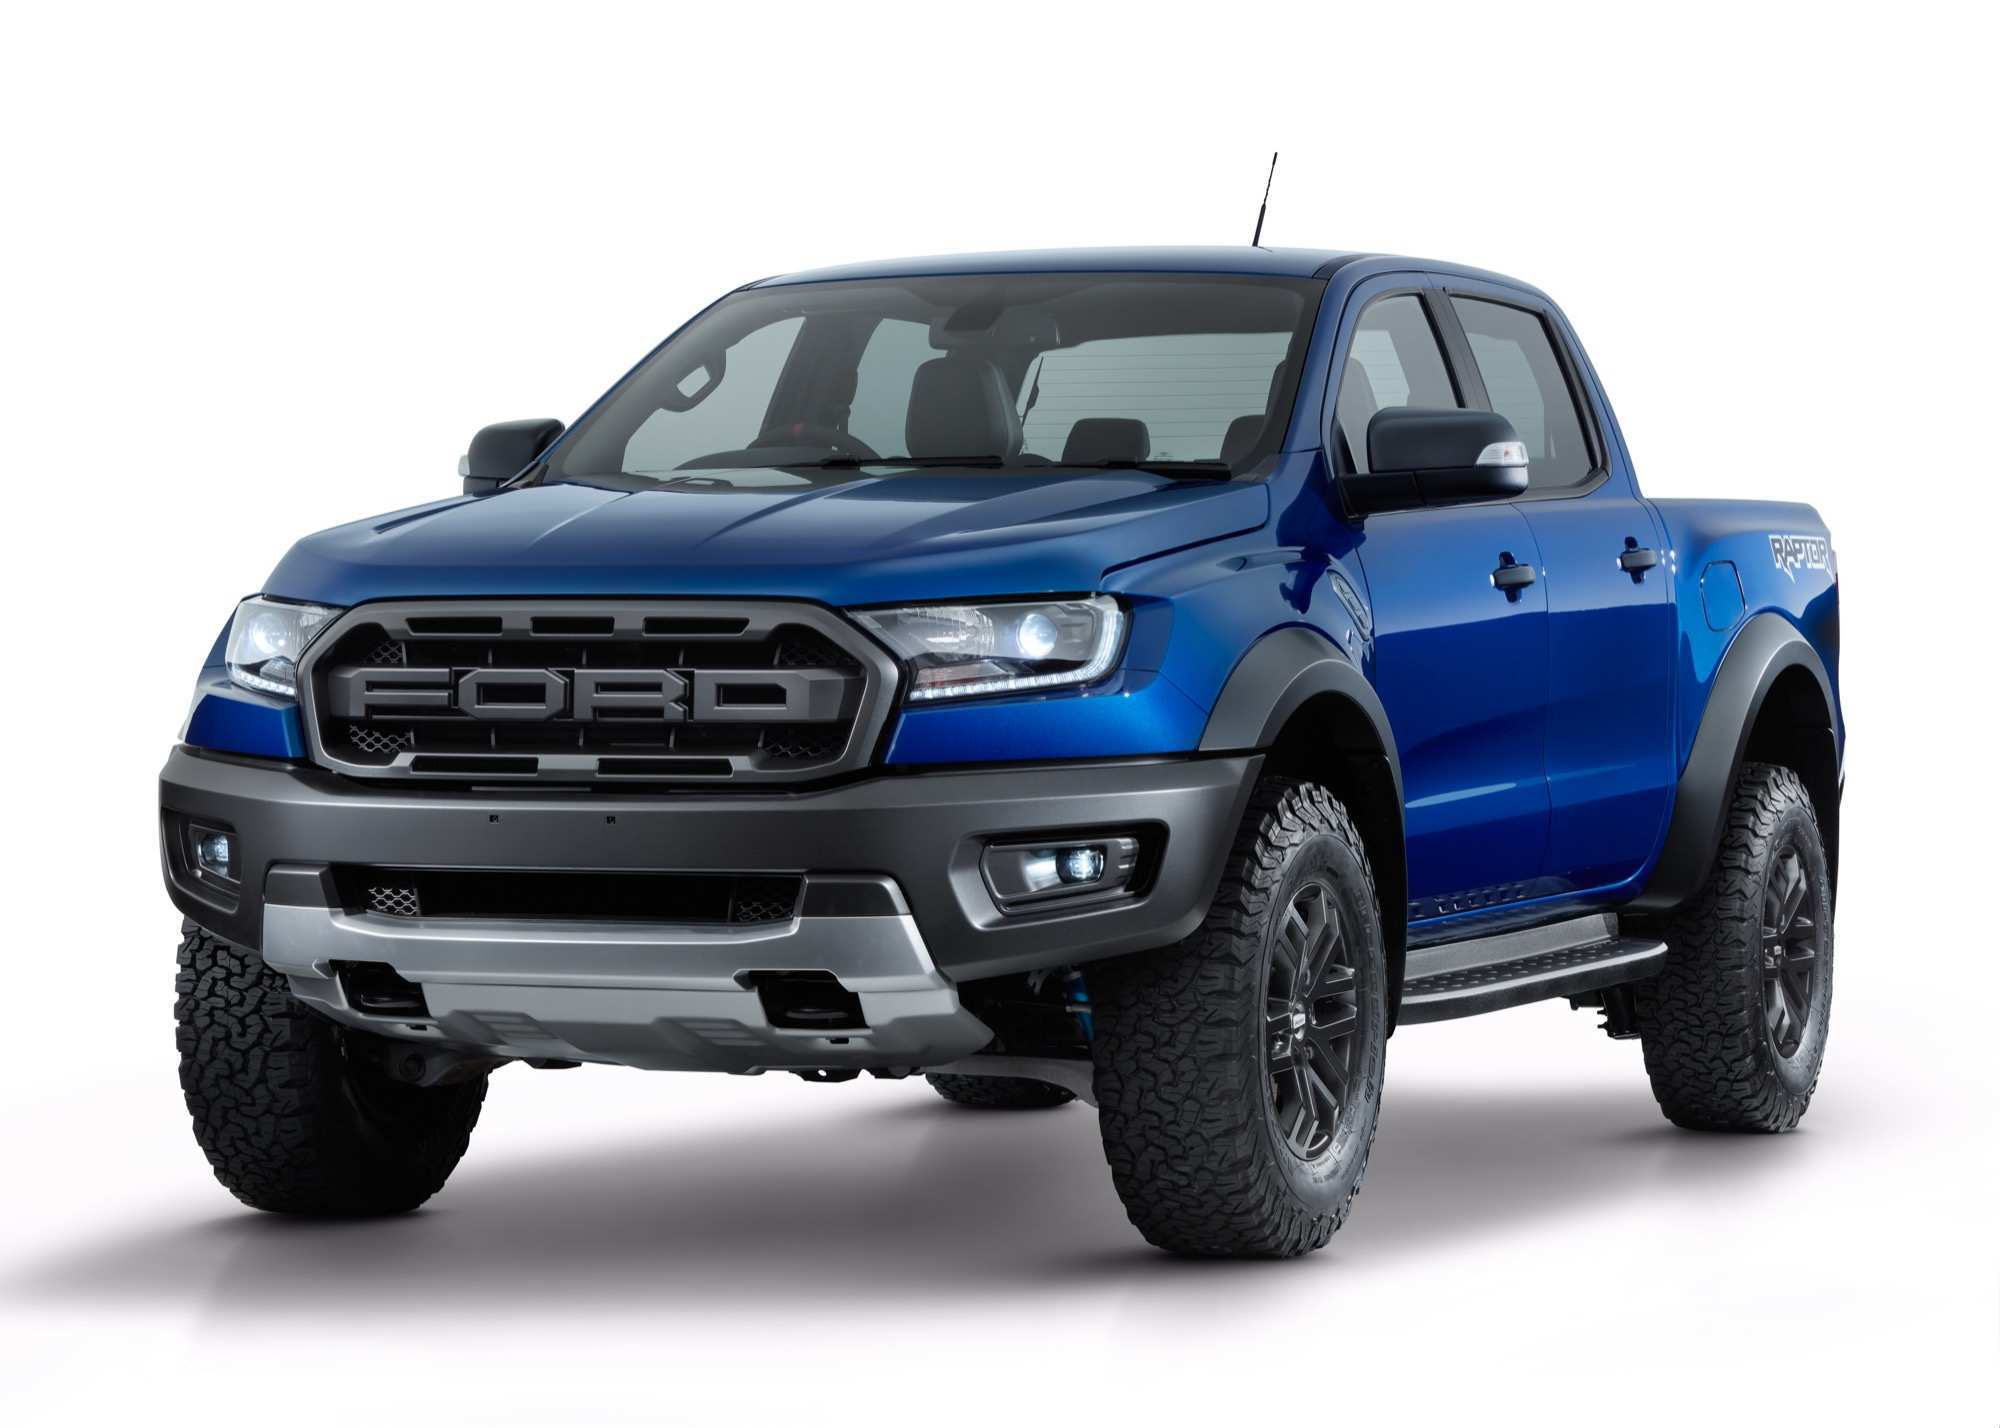 67 Great 2019 Ford Ranger Usa Specs Overview with 2019 Ford Ranger Usa Specs